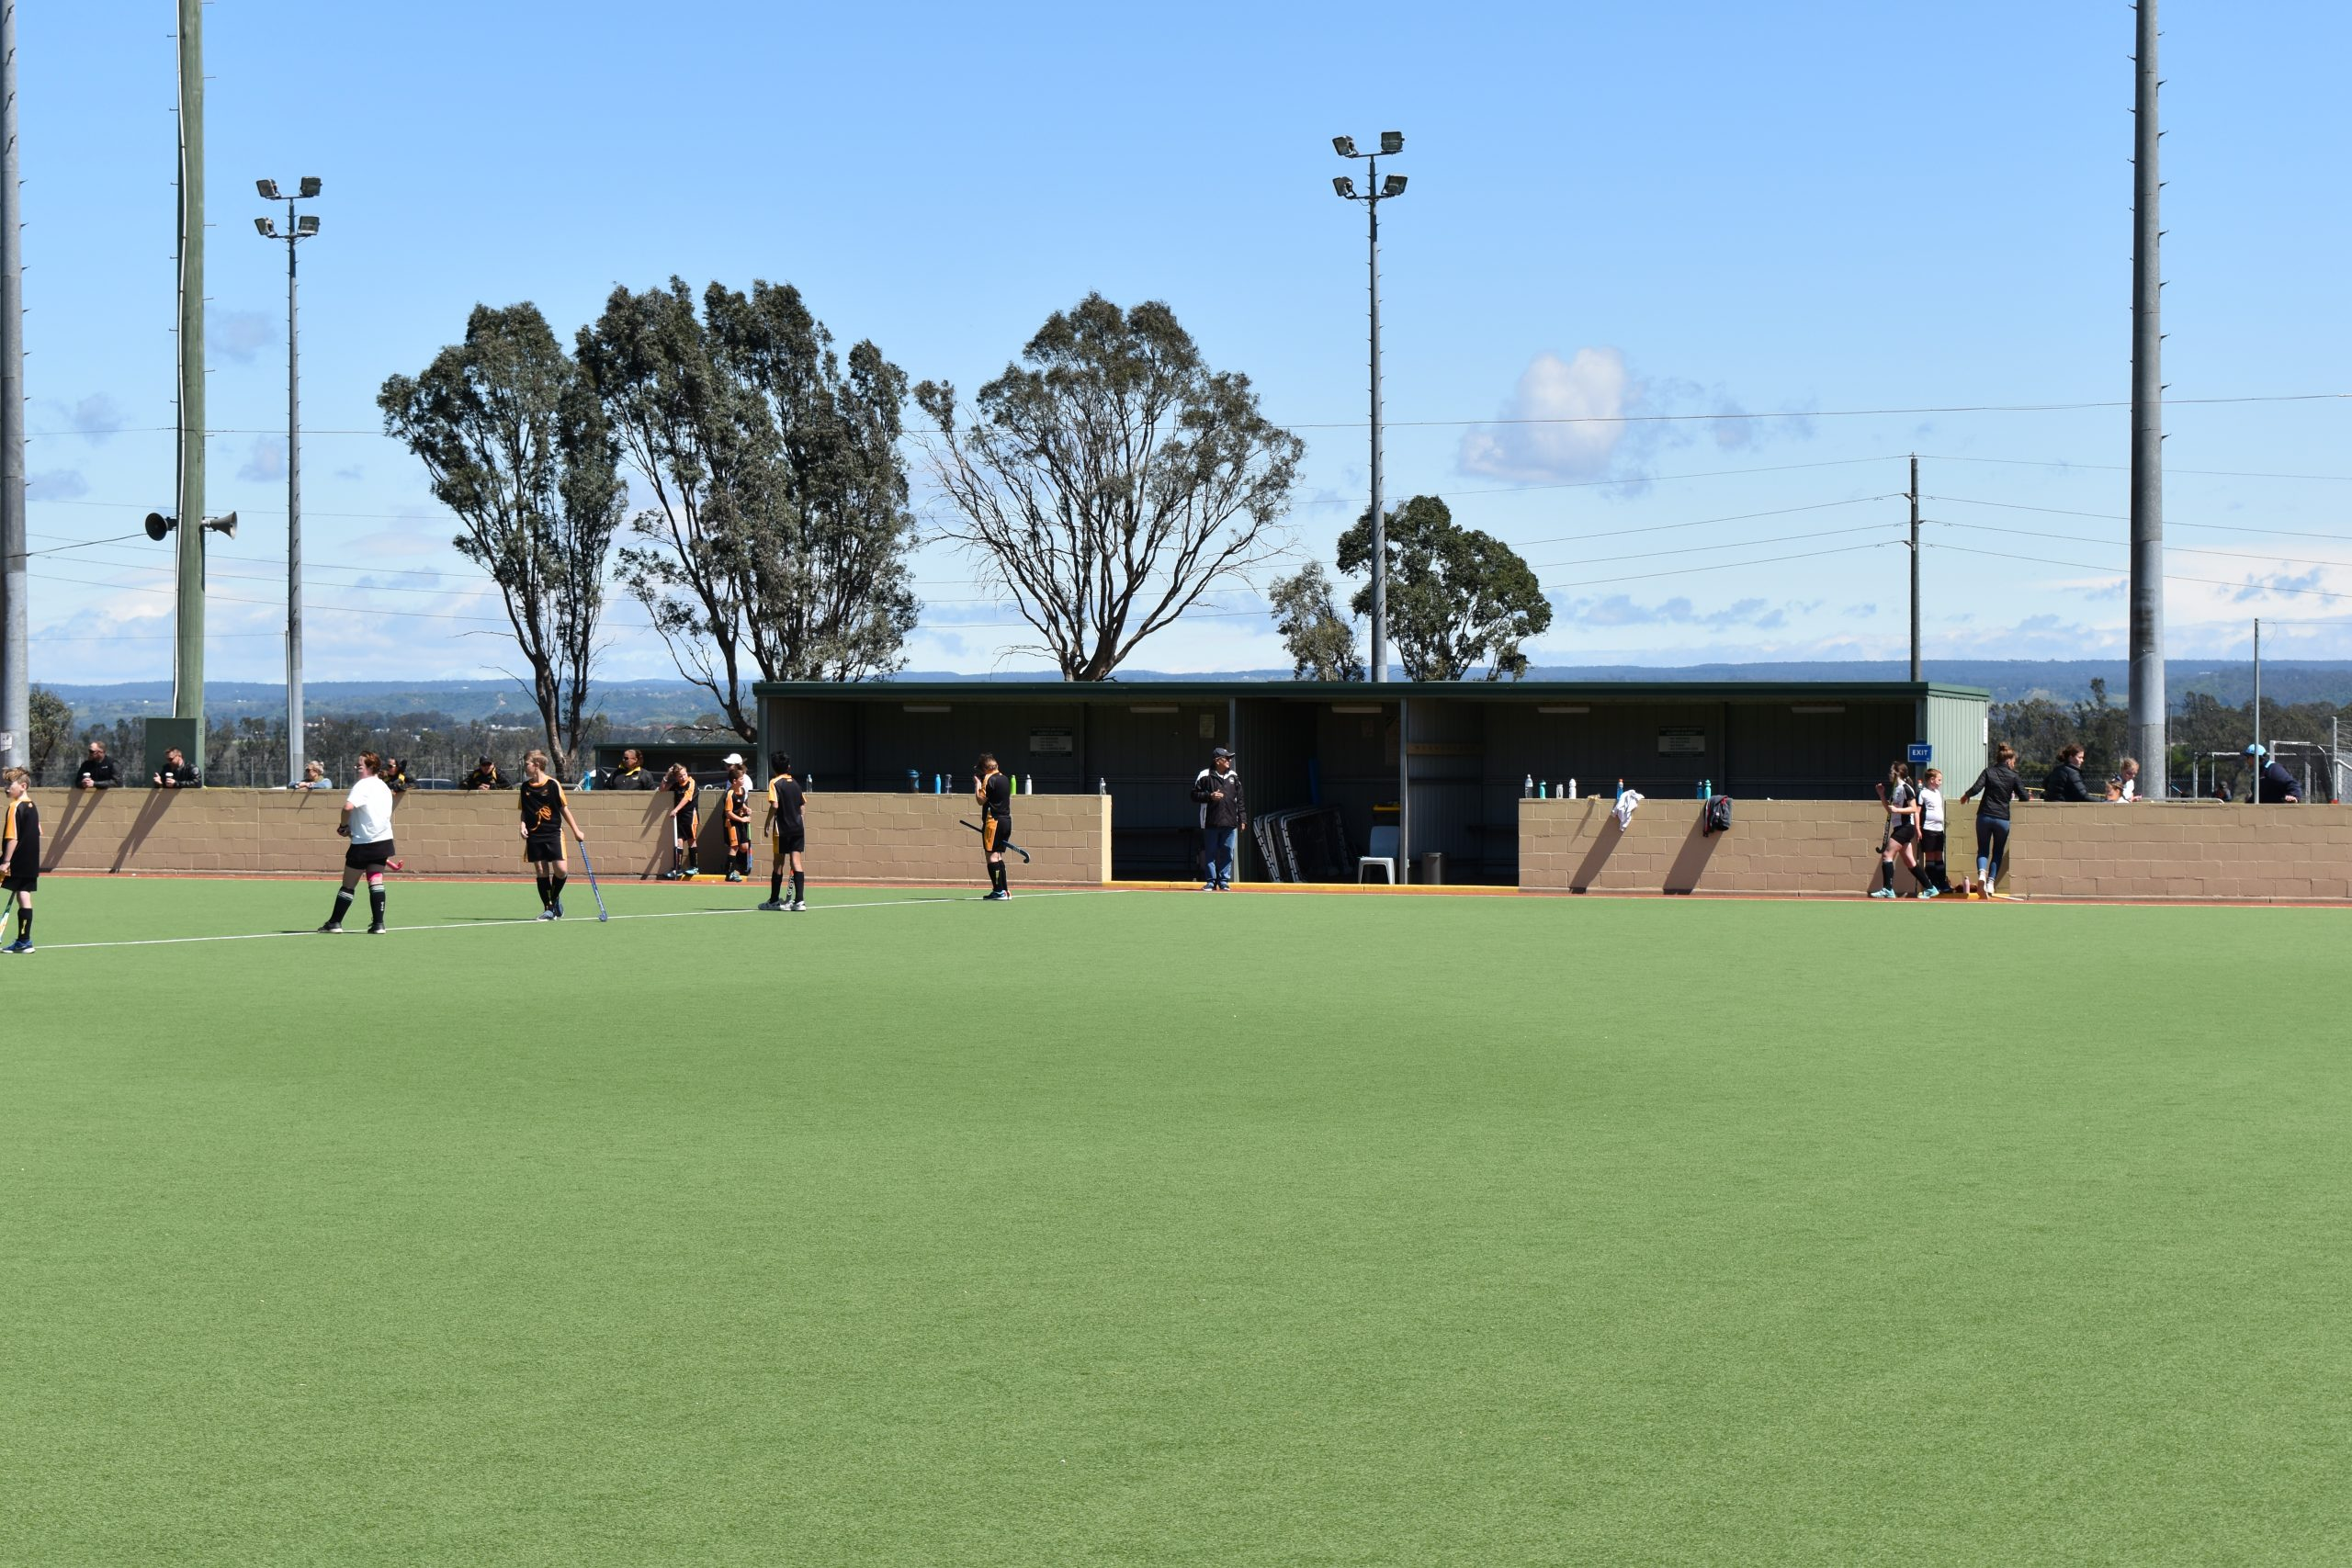 Hockey field, man in the centre of the picture in the dugout